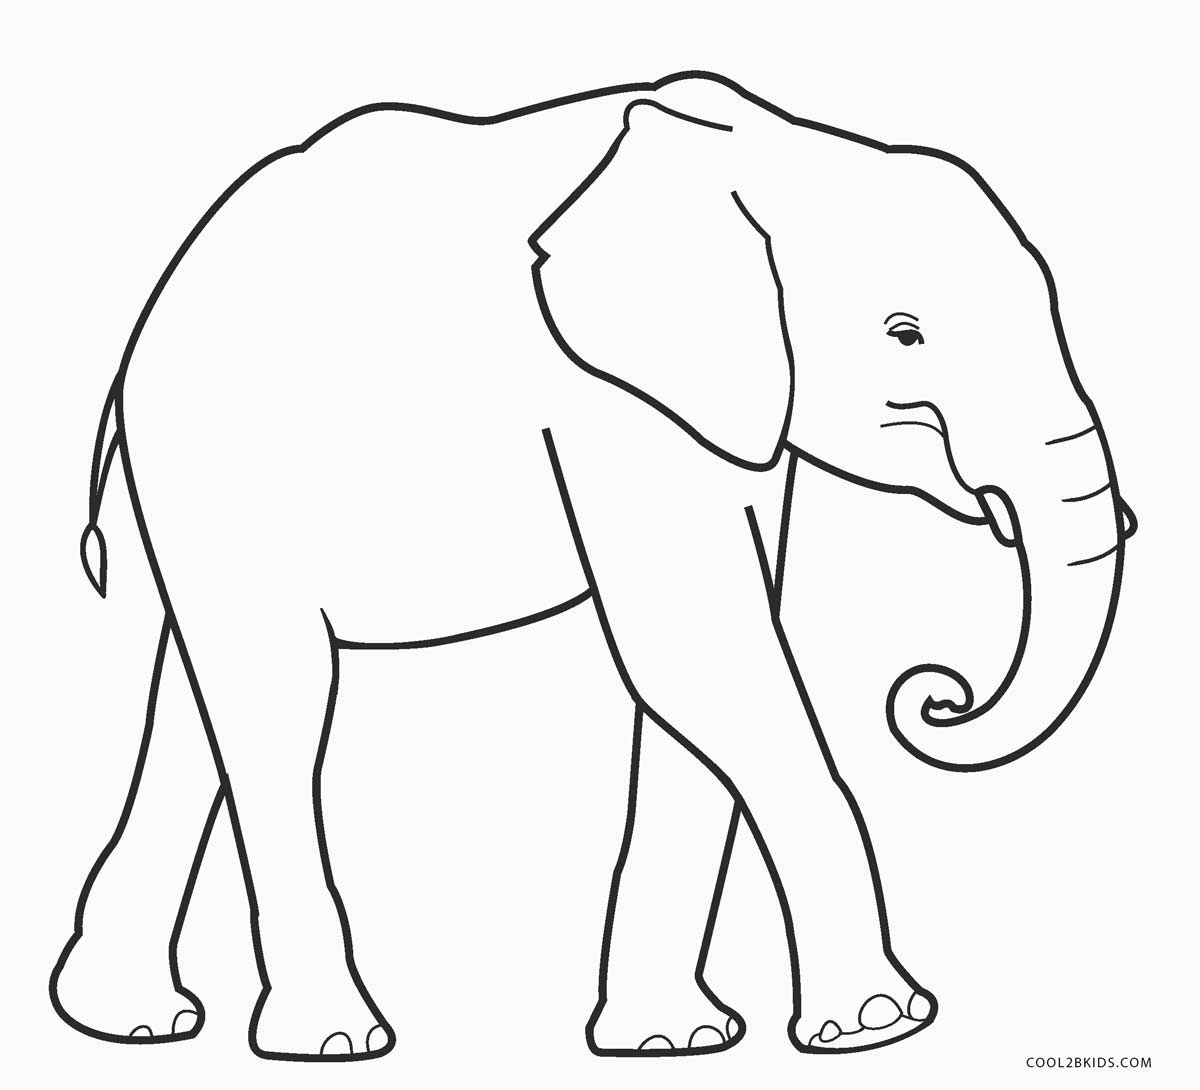 elephant picture for coloring elephant coloring pages printable free printable kids picture coloring elephant for 1 1